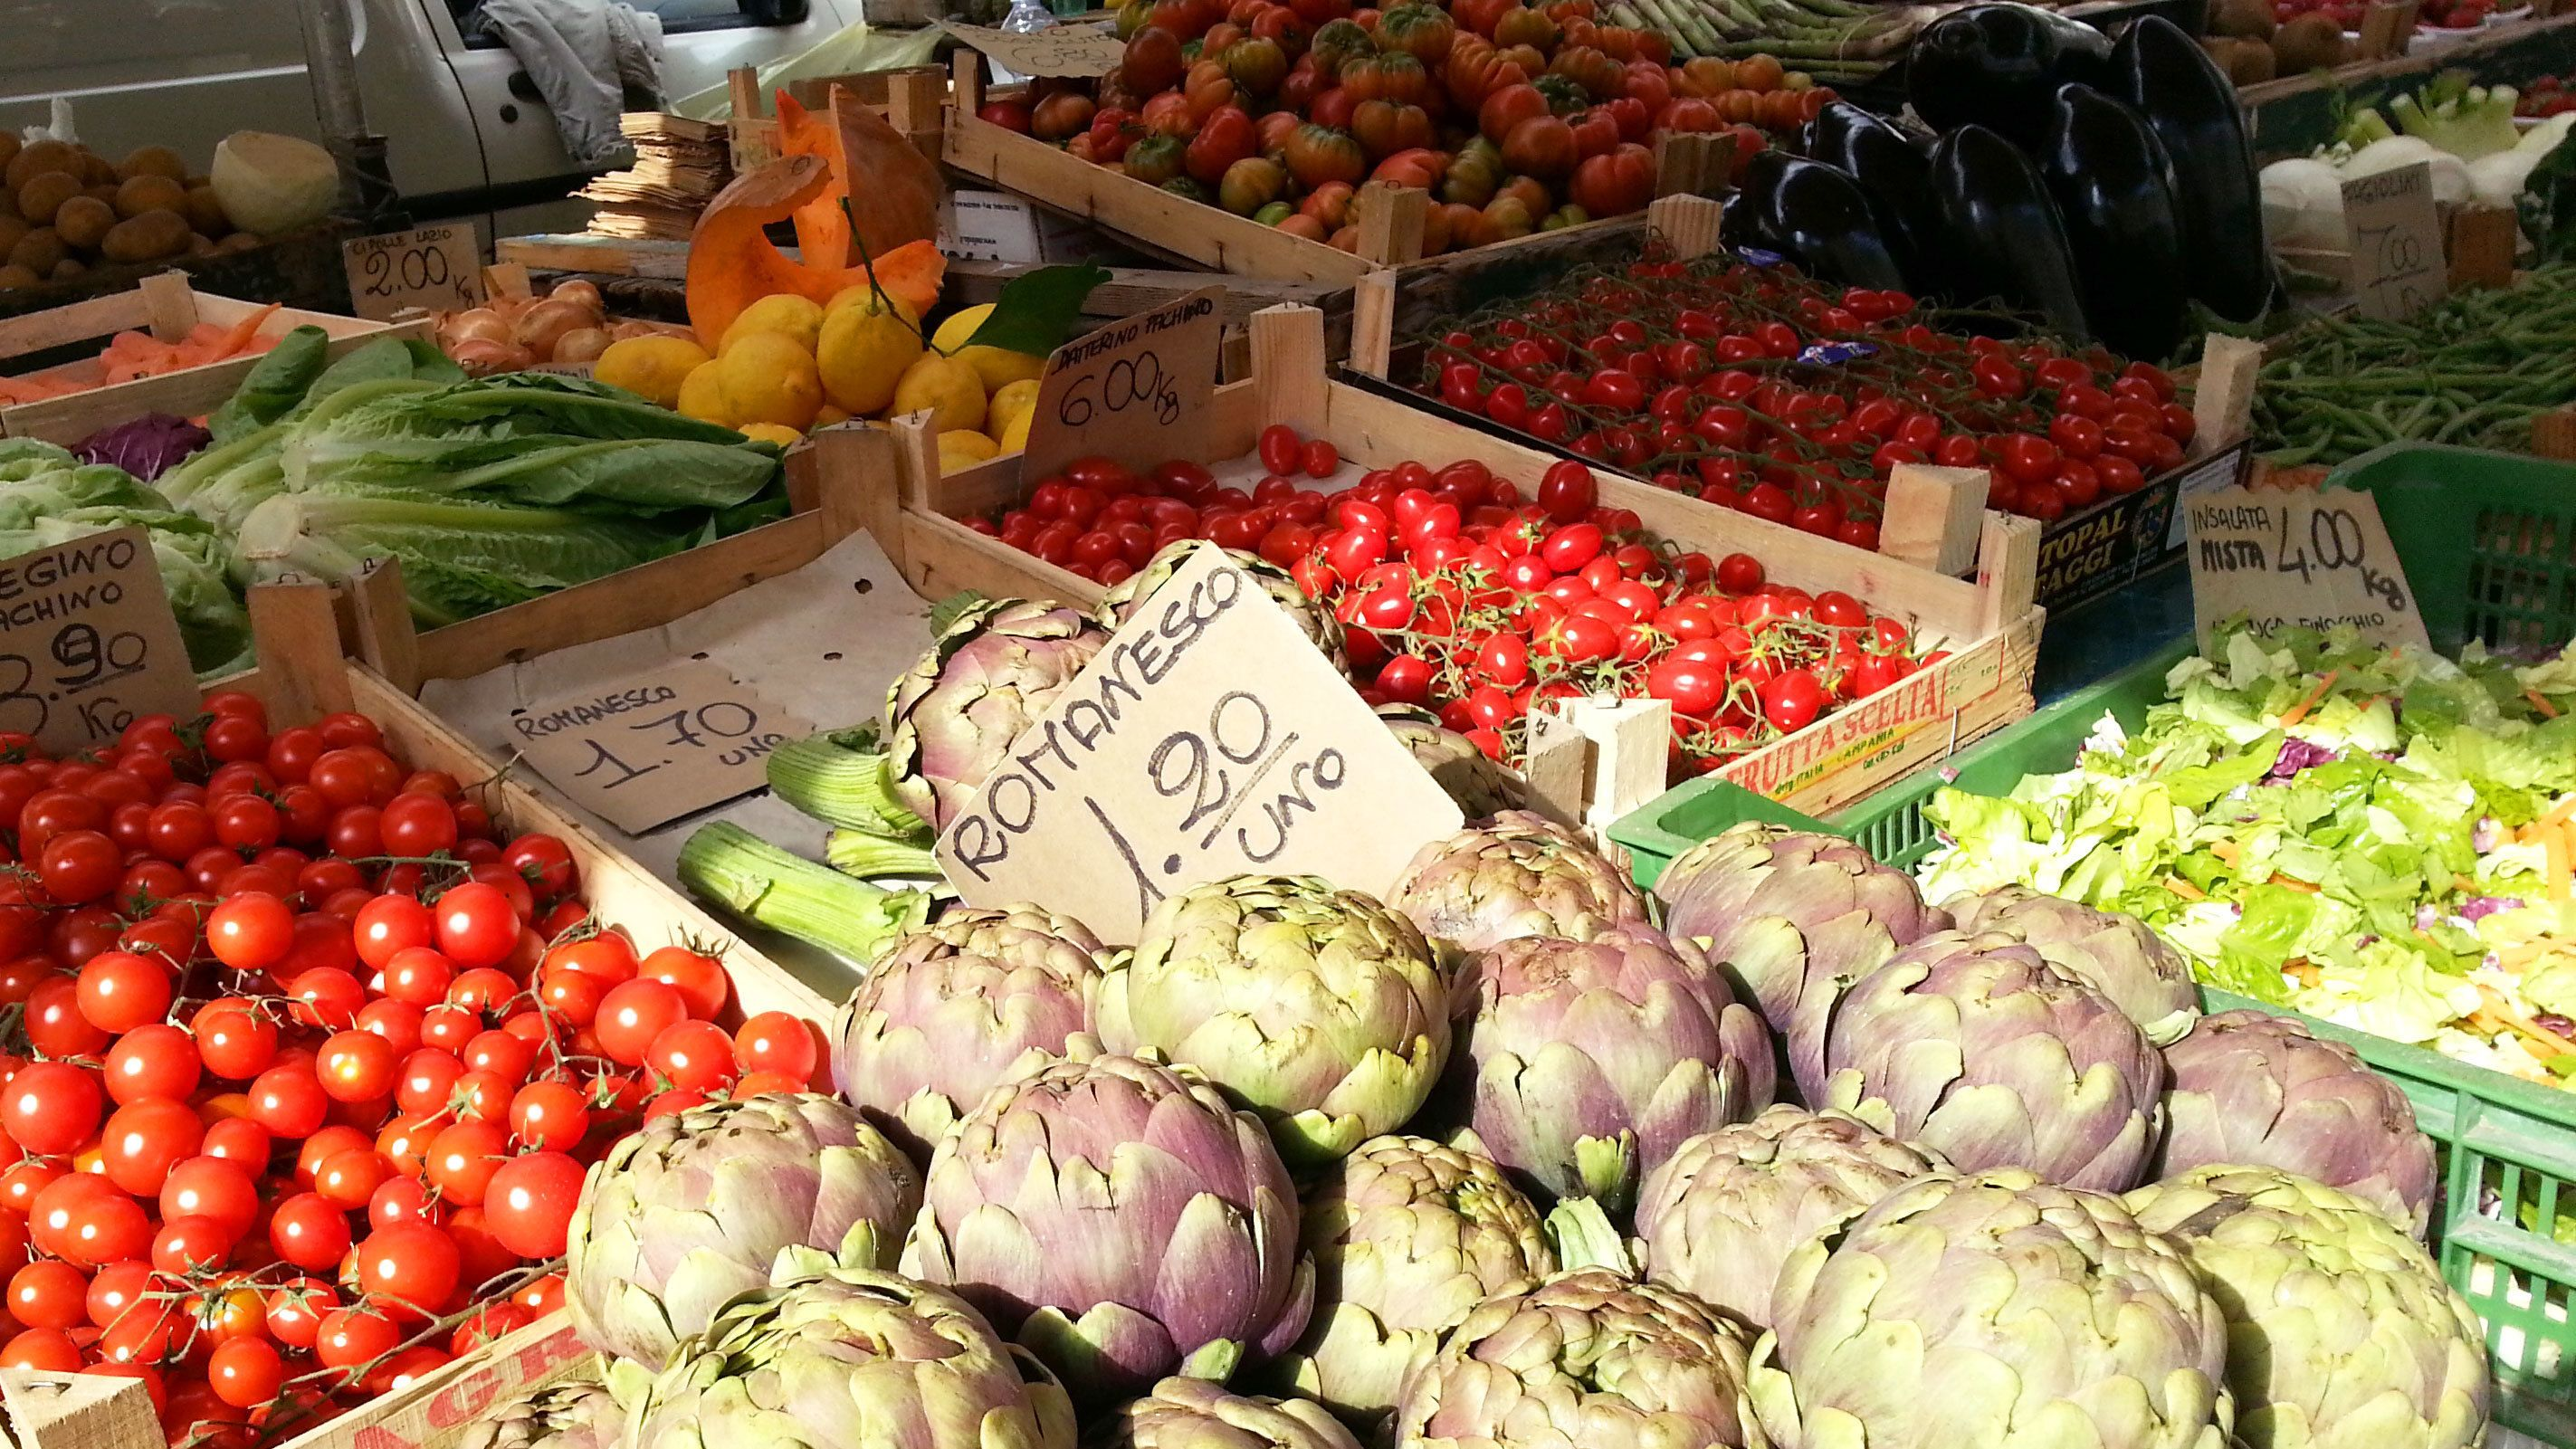 Closeup photo of fresh foods and vegetables in Italy's local markets.